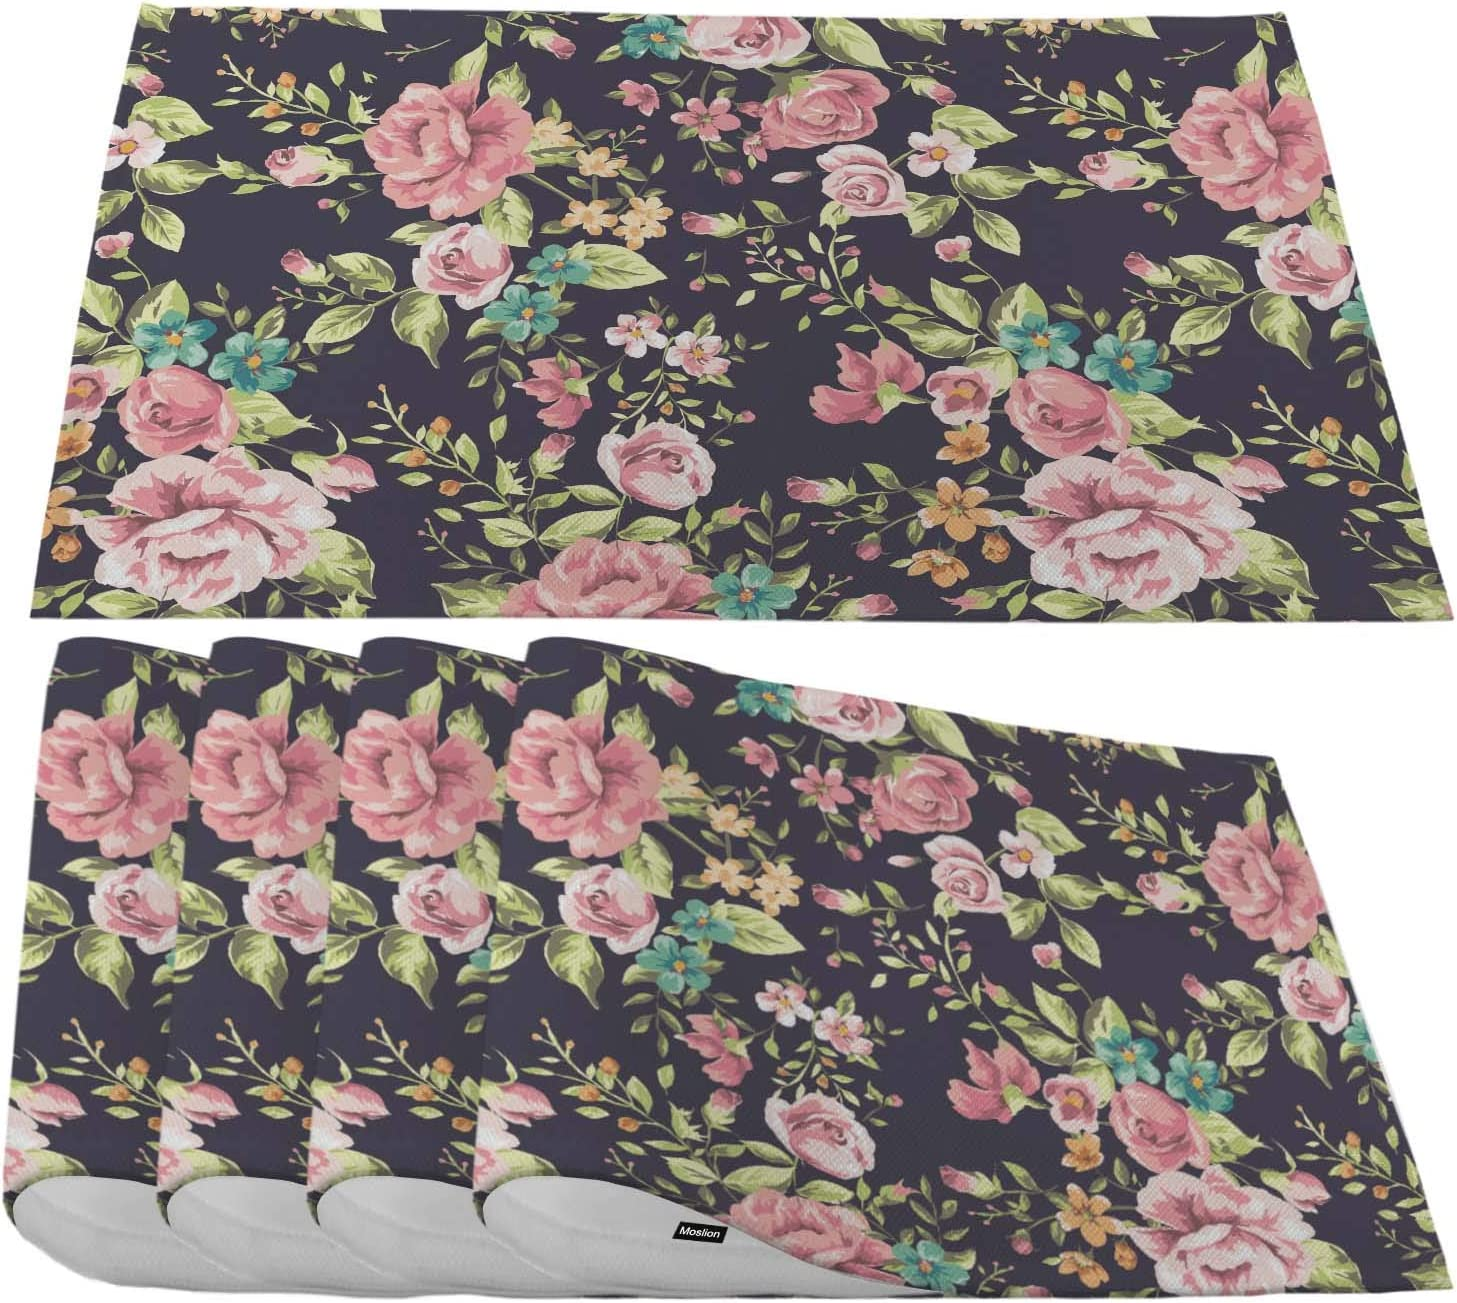 Moslion Pink Flower Placemats,Vintage Floral Flower and Leaf Pattern On Navy Background Place Mats for Dining Table/Kitchen Table,Waterproof Non-Slip Washable Outdoor Dinner Table Mats,Set of 4